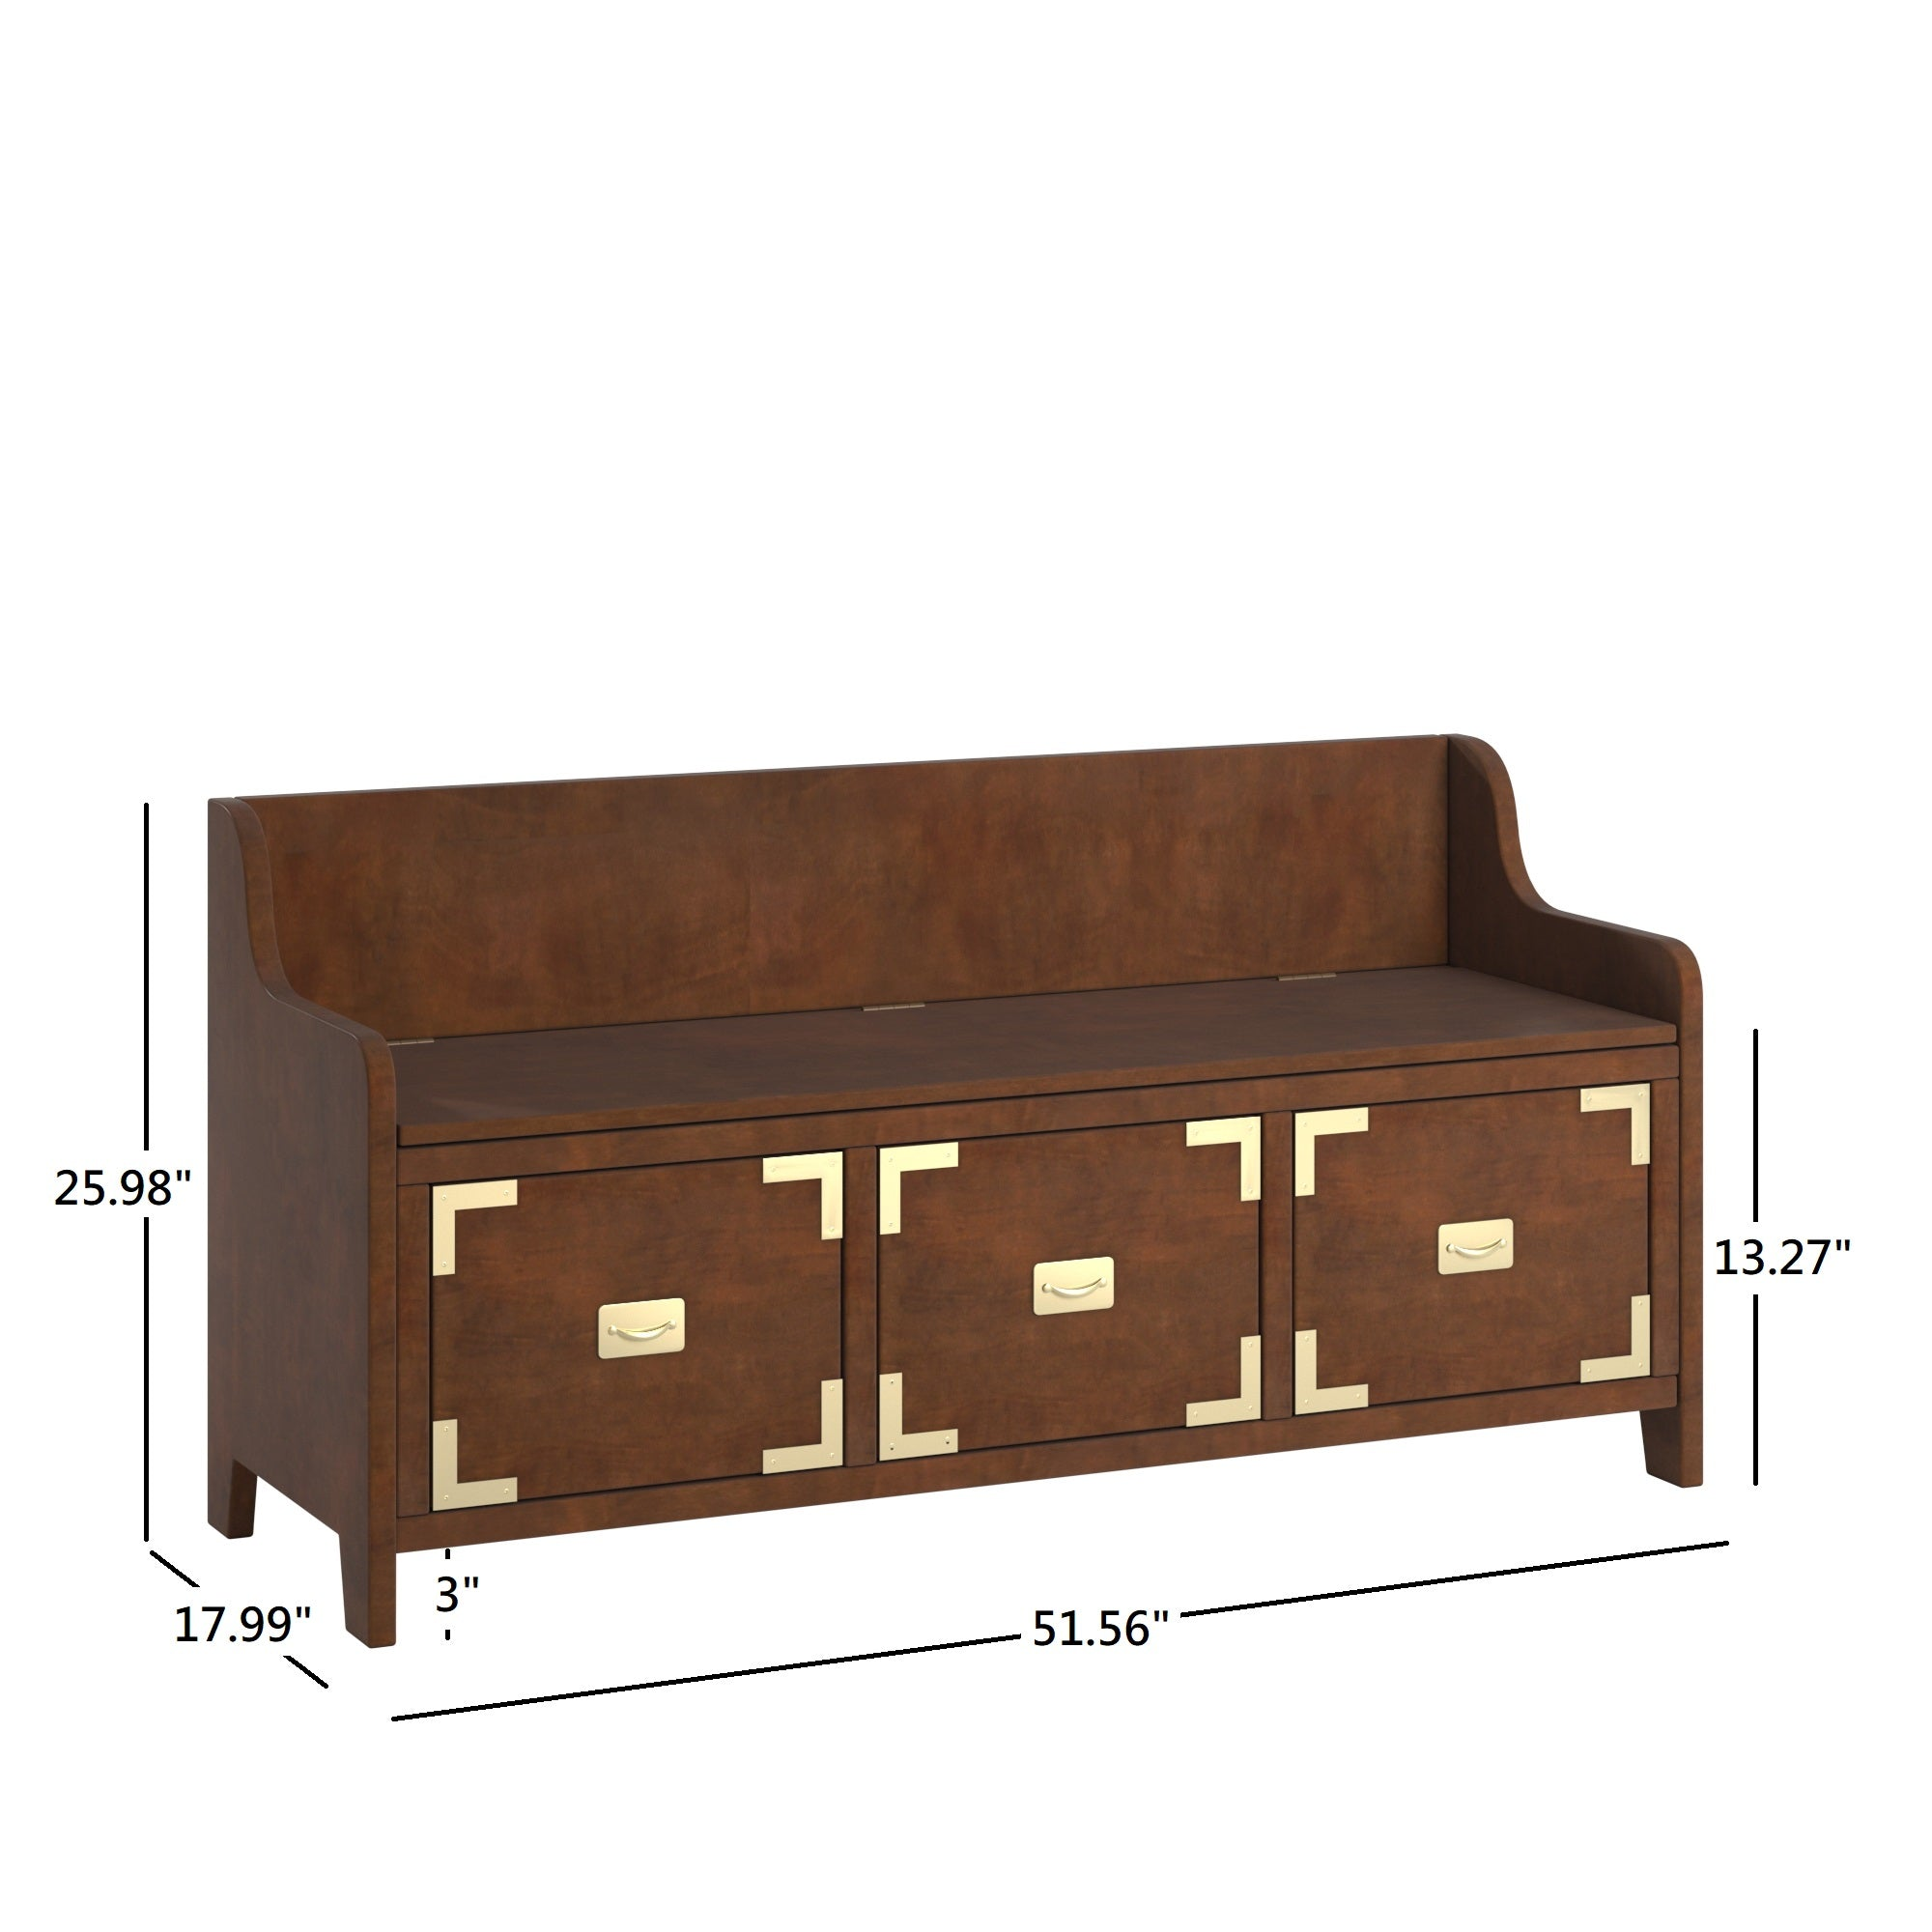 "52"" Lift Top Storage Bench - Espresso"